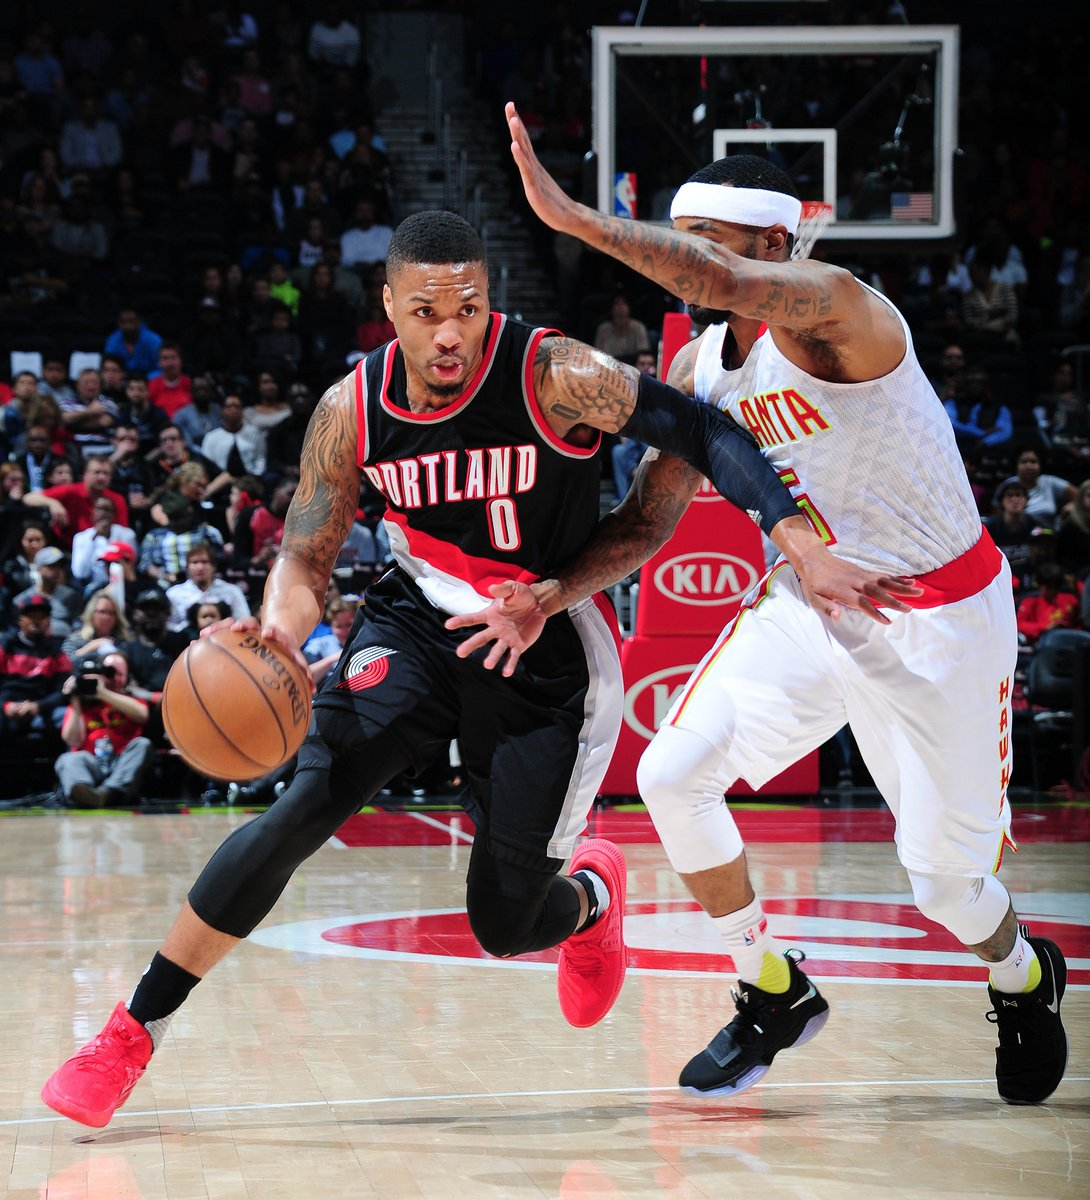 Blazers Basketball Schedule: » Rip.city/2mED4Wd « Https://t.co/wSrOUnHyQC